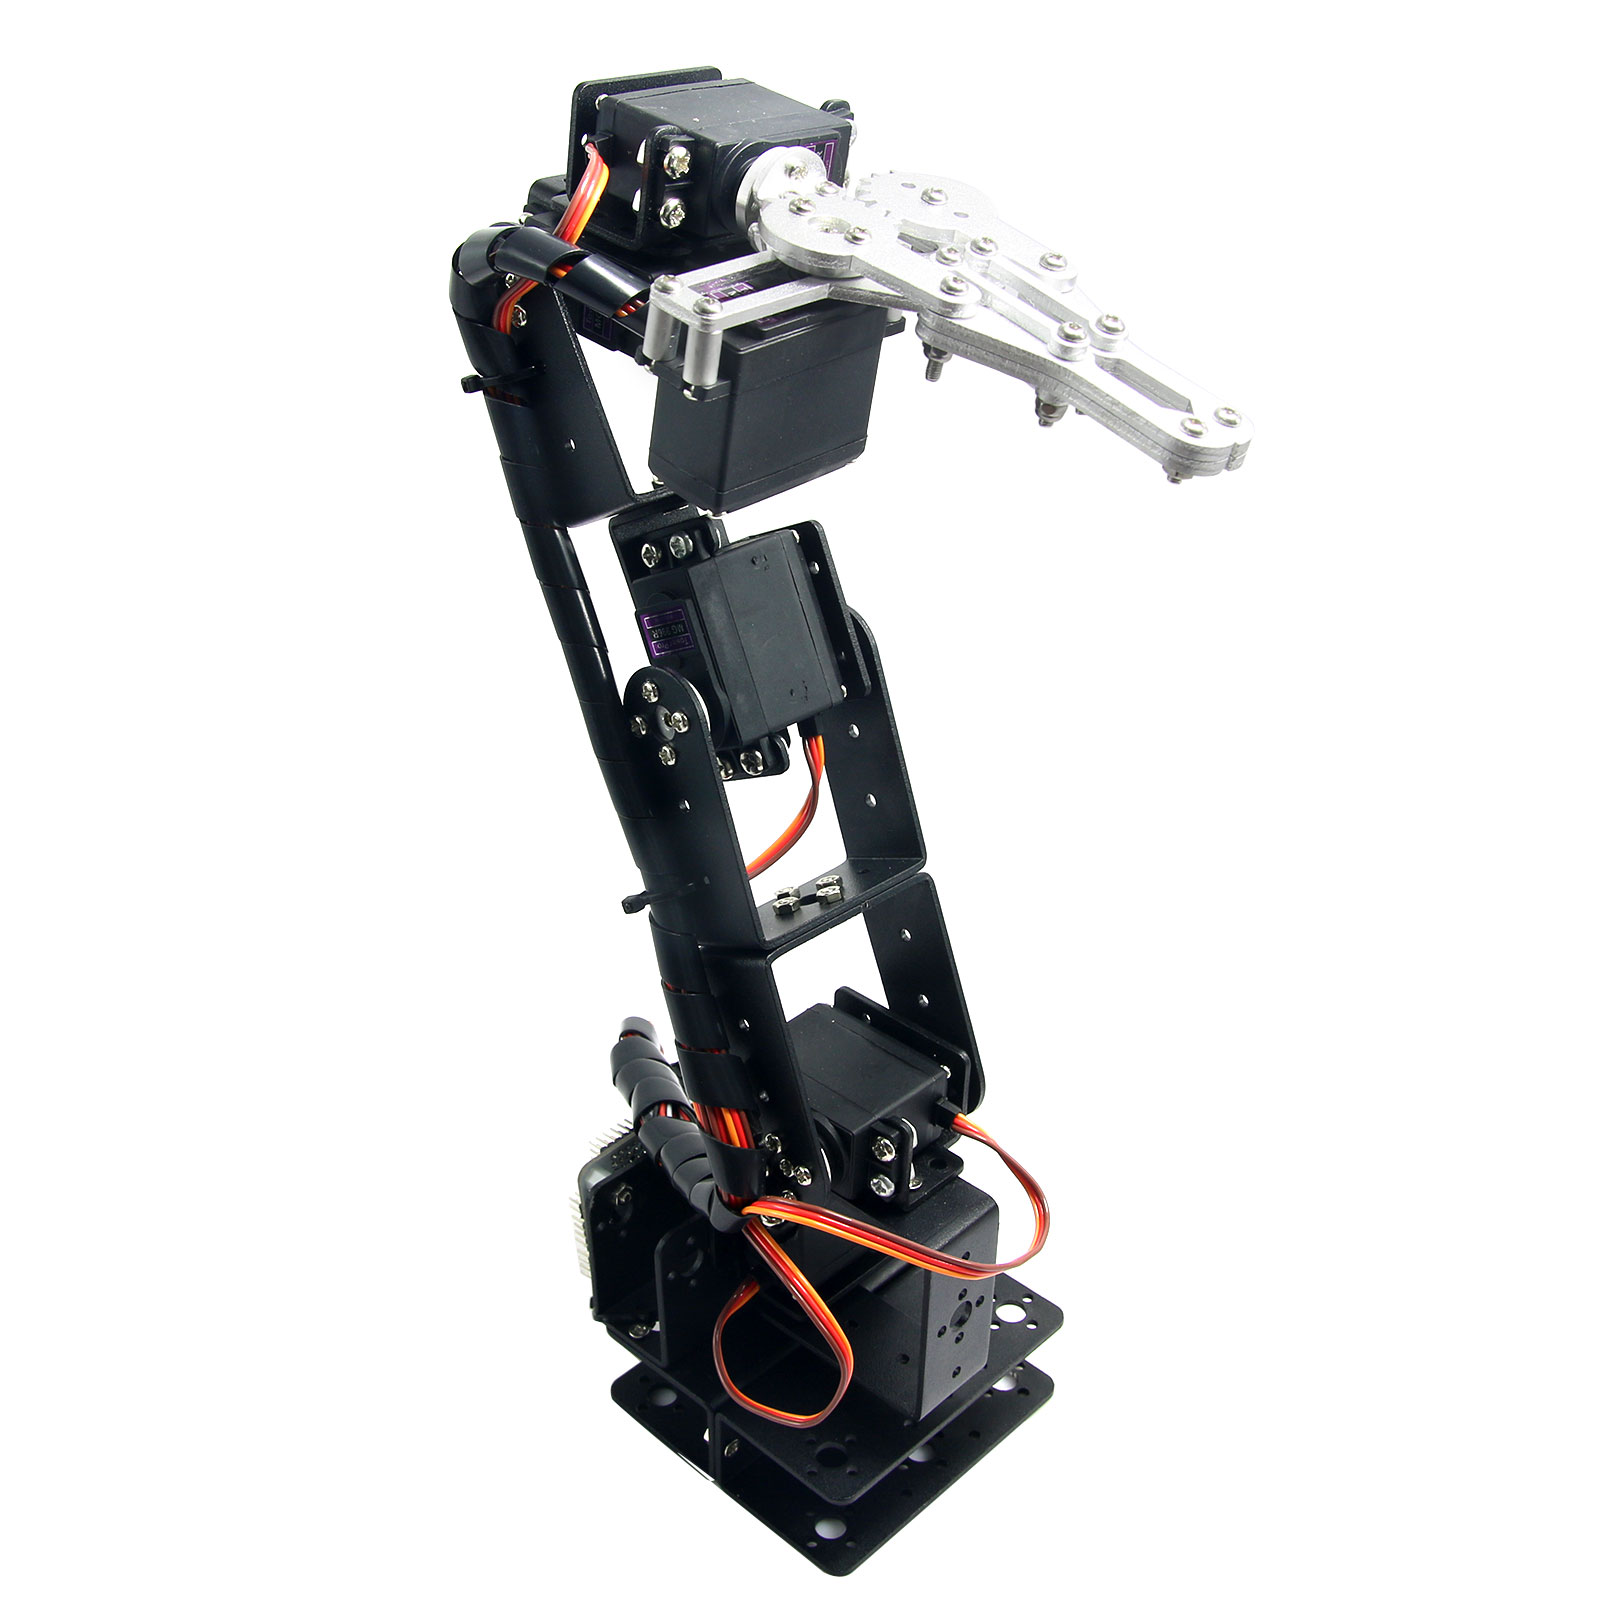 6D-3U-S Robot 6 DOF Aluminium Clamp Claw Mount kit Mechanical Robotic Arm & 6pcs MG996R Servos & Metal Servo Horn 3 dof metal robotic claw gripper robot mechanical claw compatible with ld 1501mg digital servo ldx 335 single axis digital servo